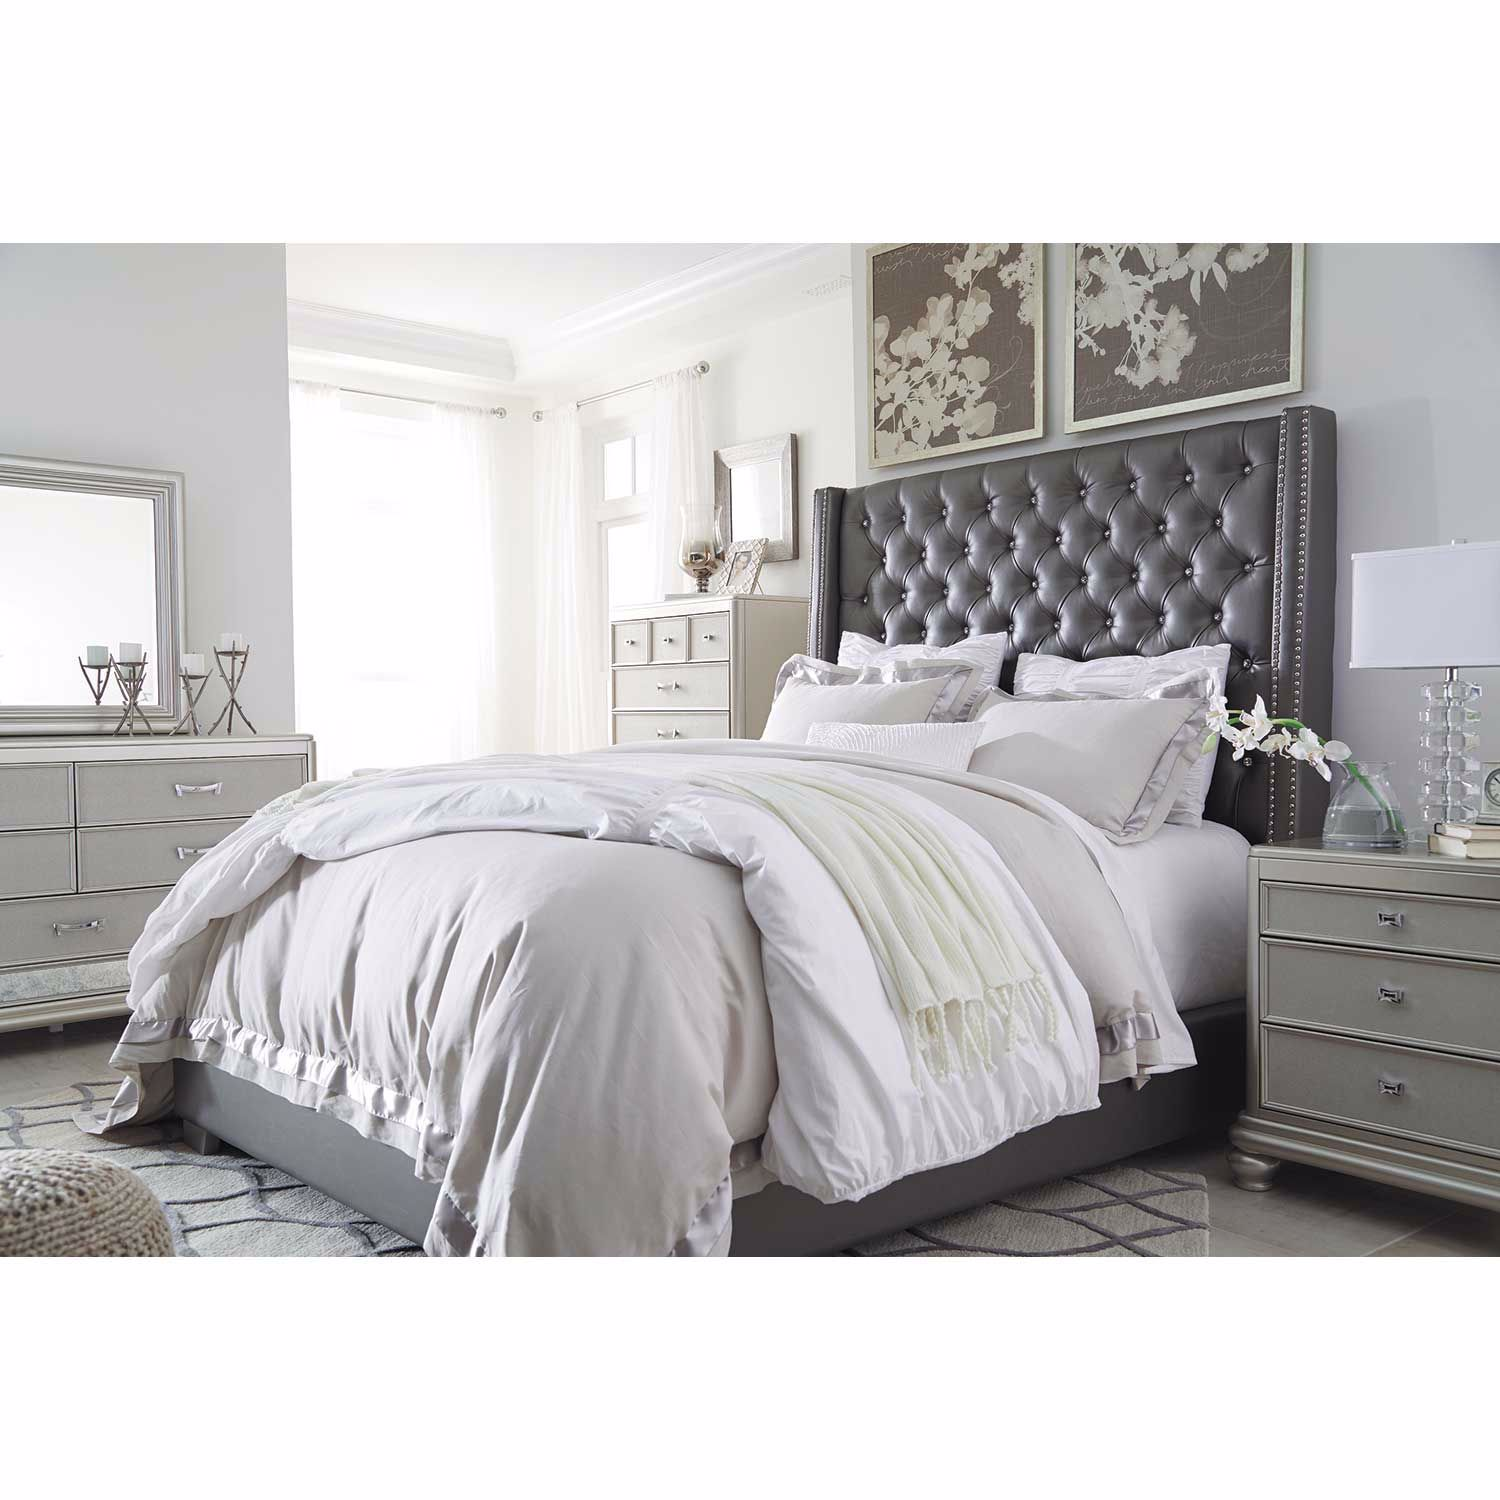 B657 77 Ashley Furniture Queen Upholstered Bed: Coralayne Upholstered Queen Bed